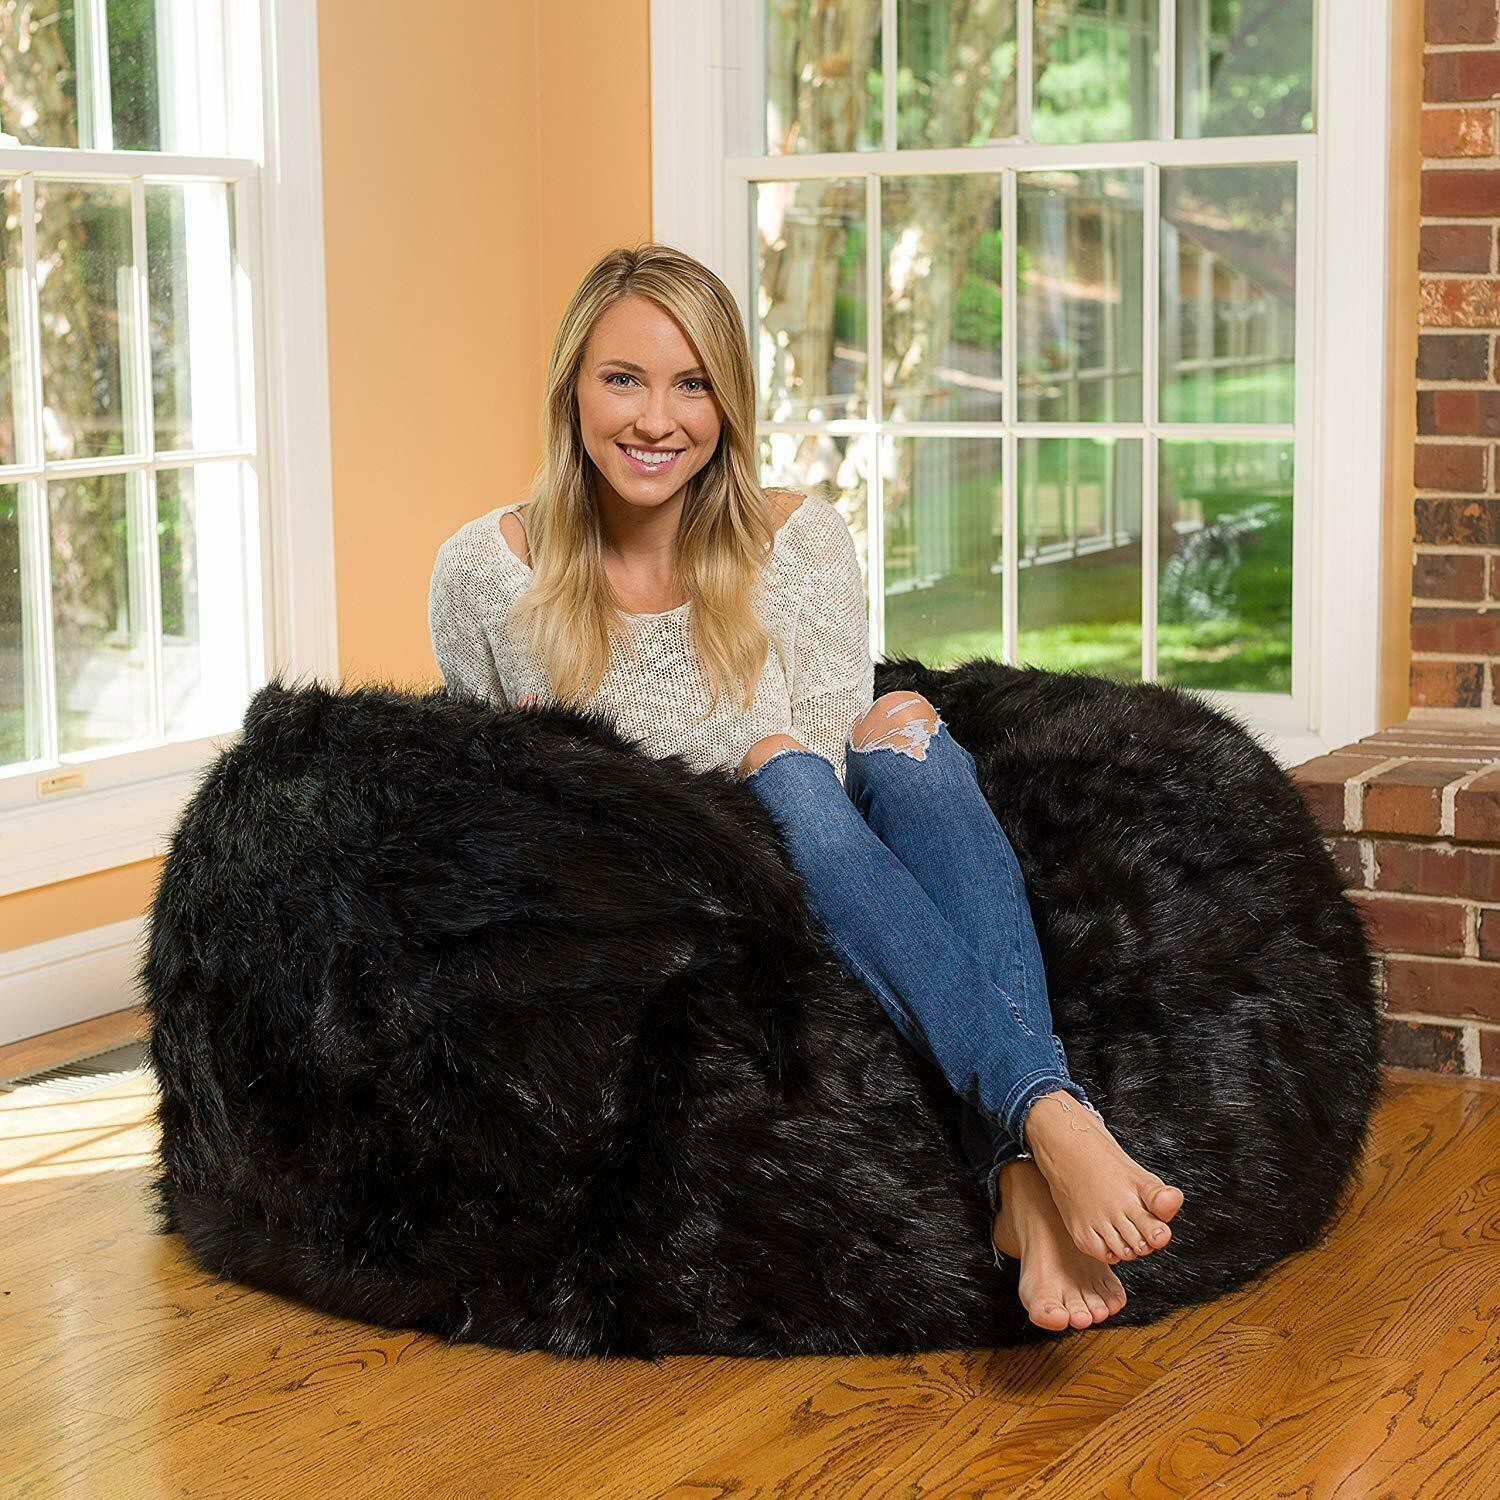 Leather Fur U and I Design Bean Bag and Cover, XXXL/9mm (Black) Free Shipping